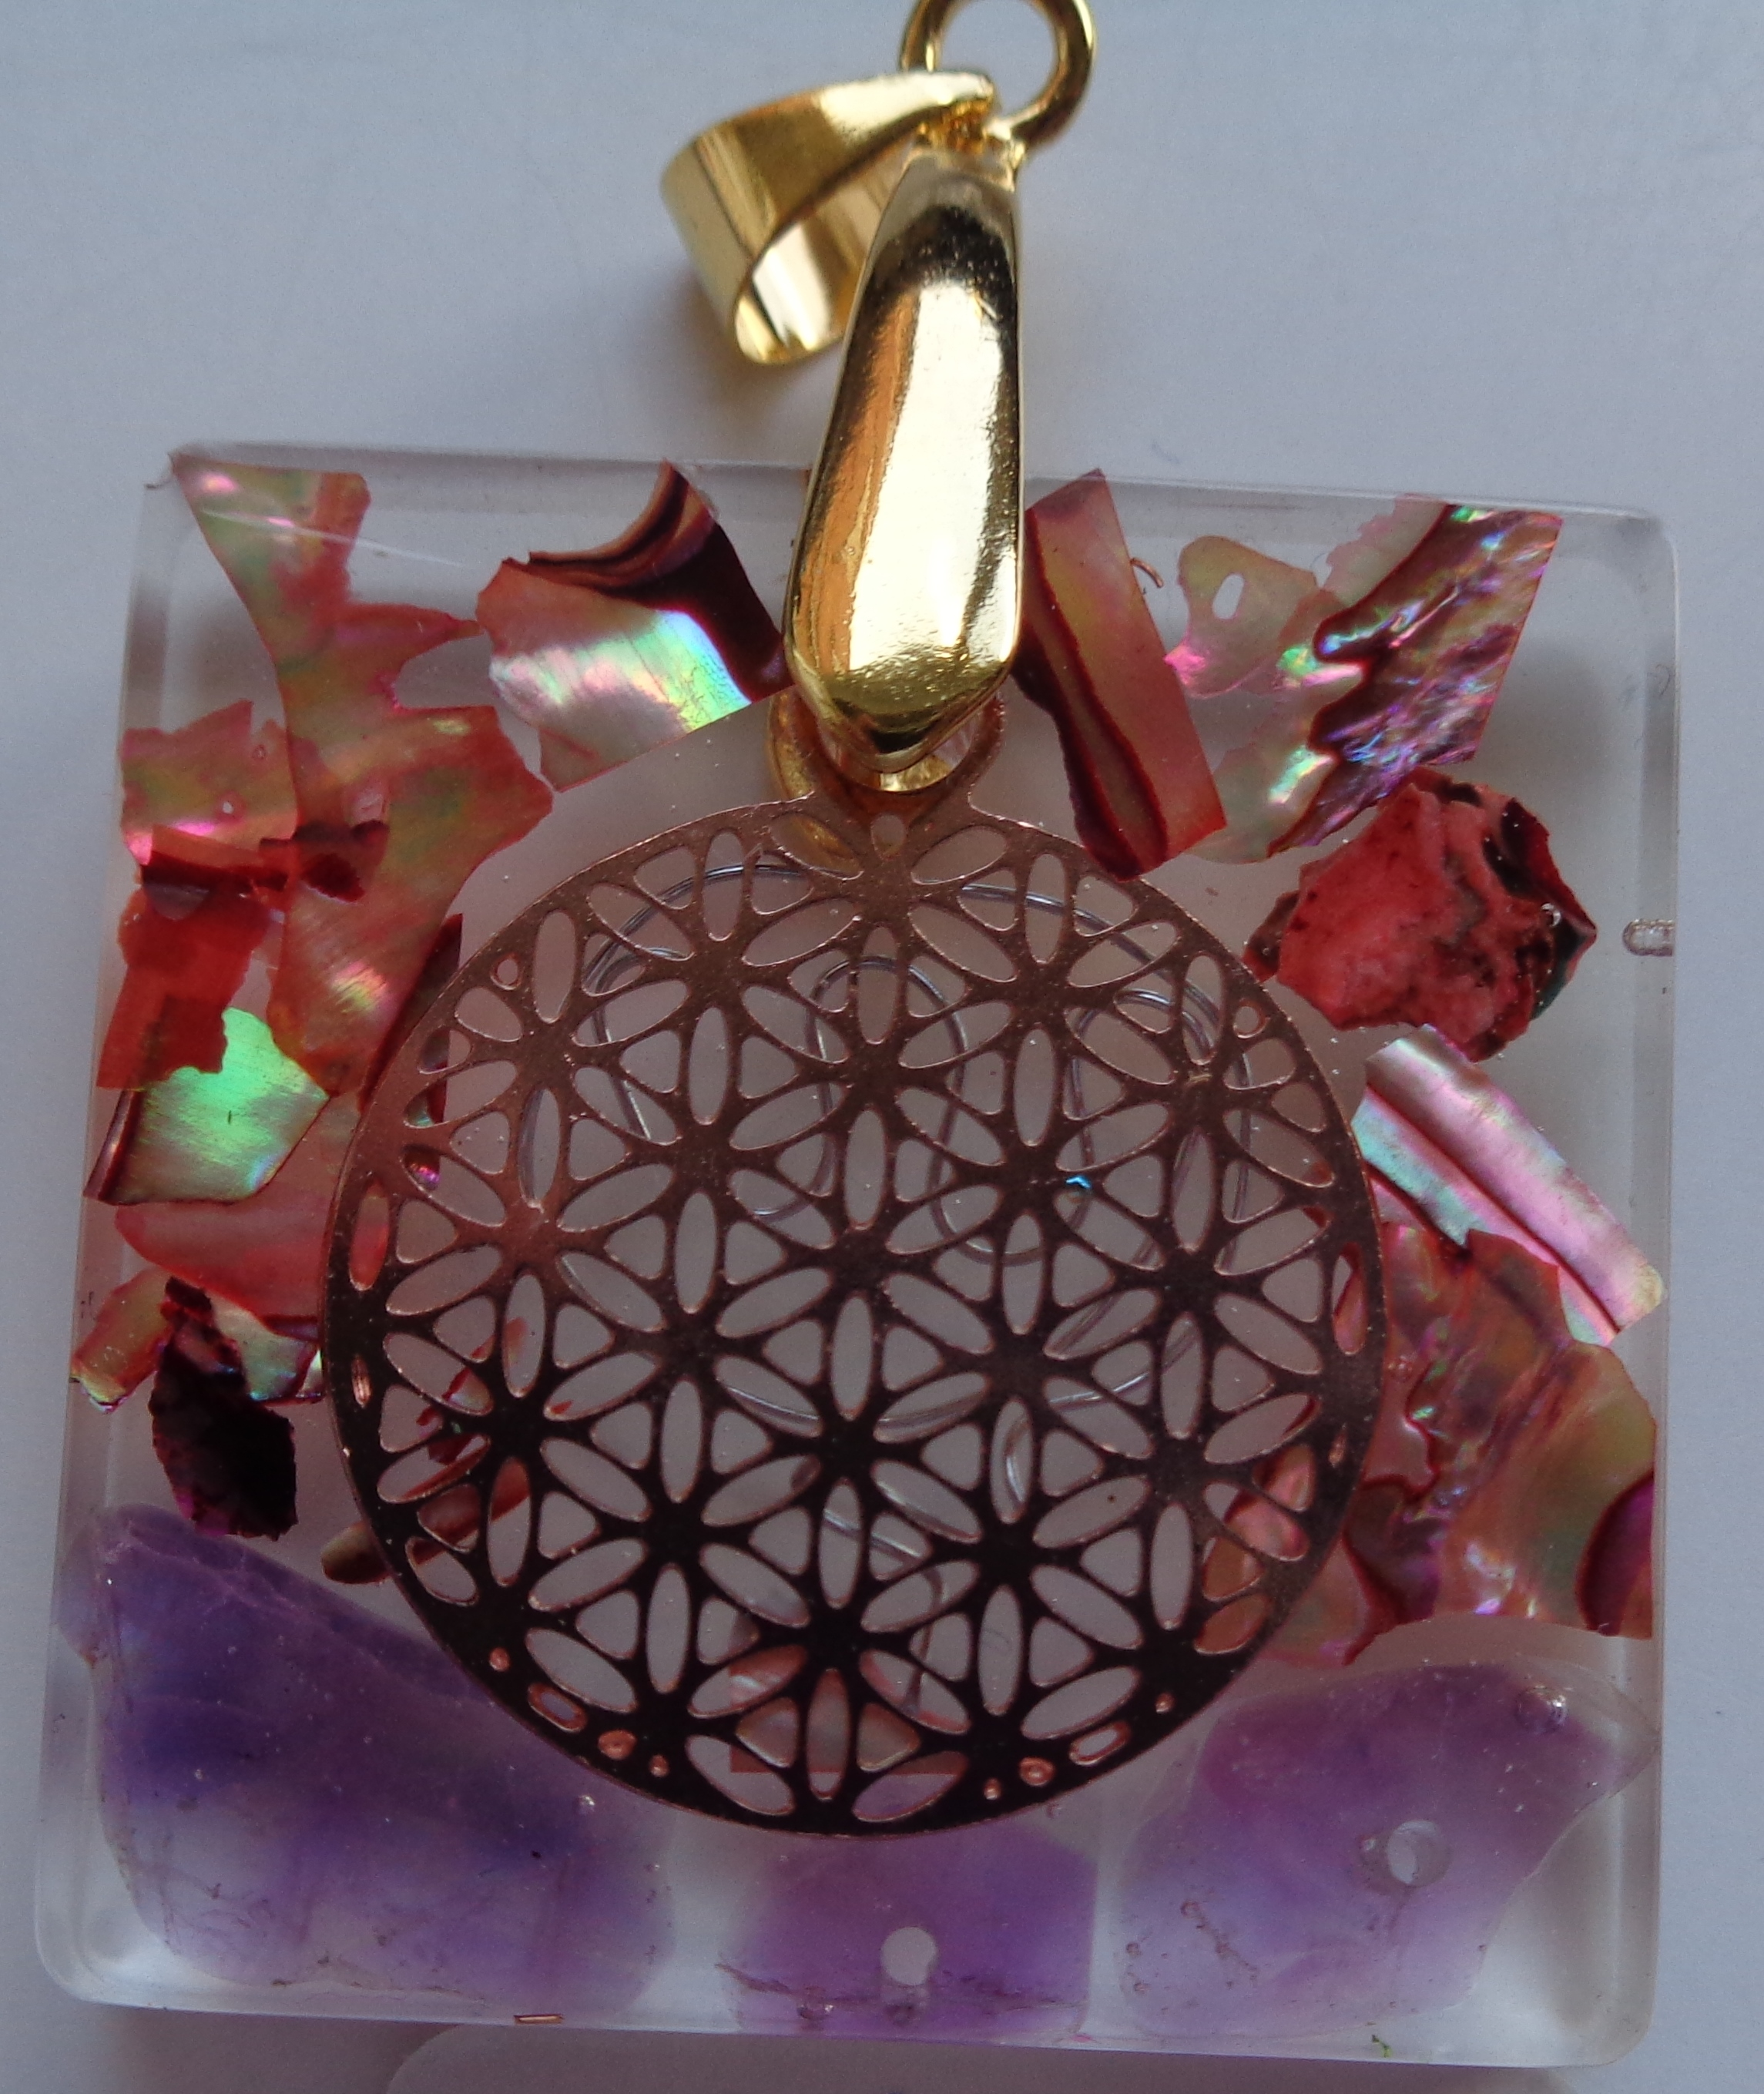 Amethyst, Abalone, Flower of Life €25,00